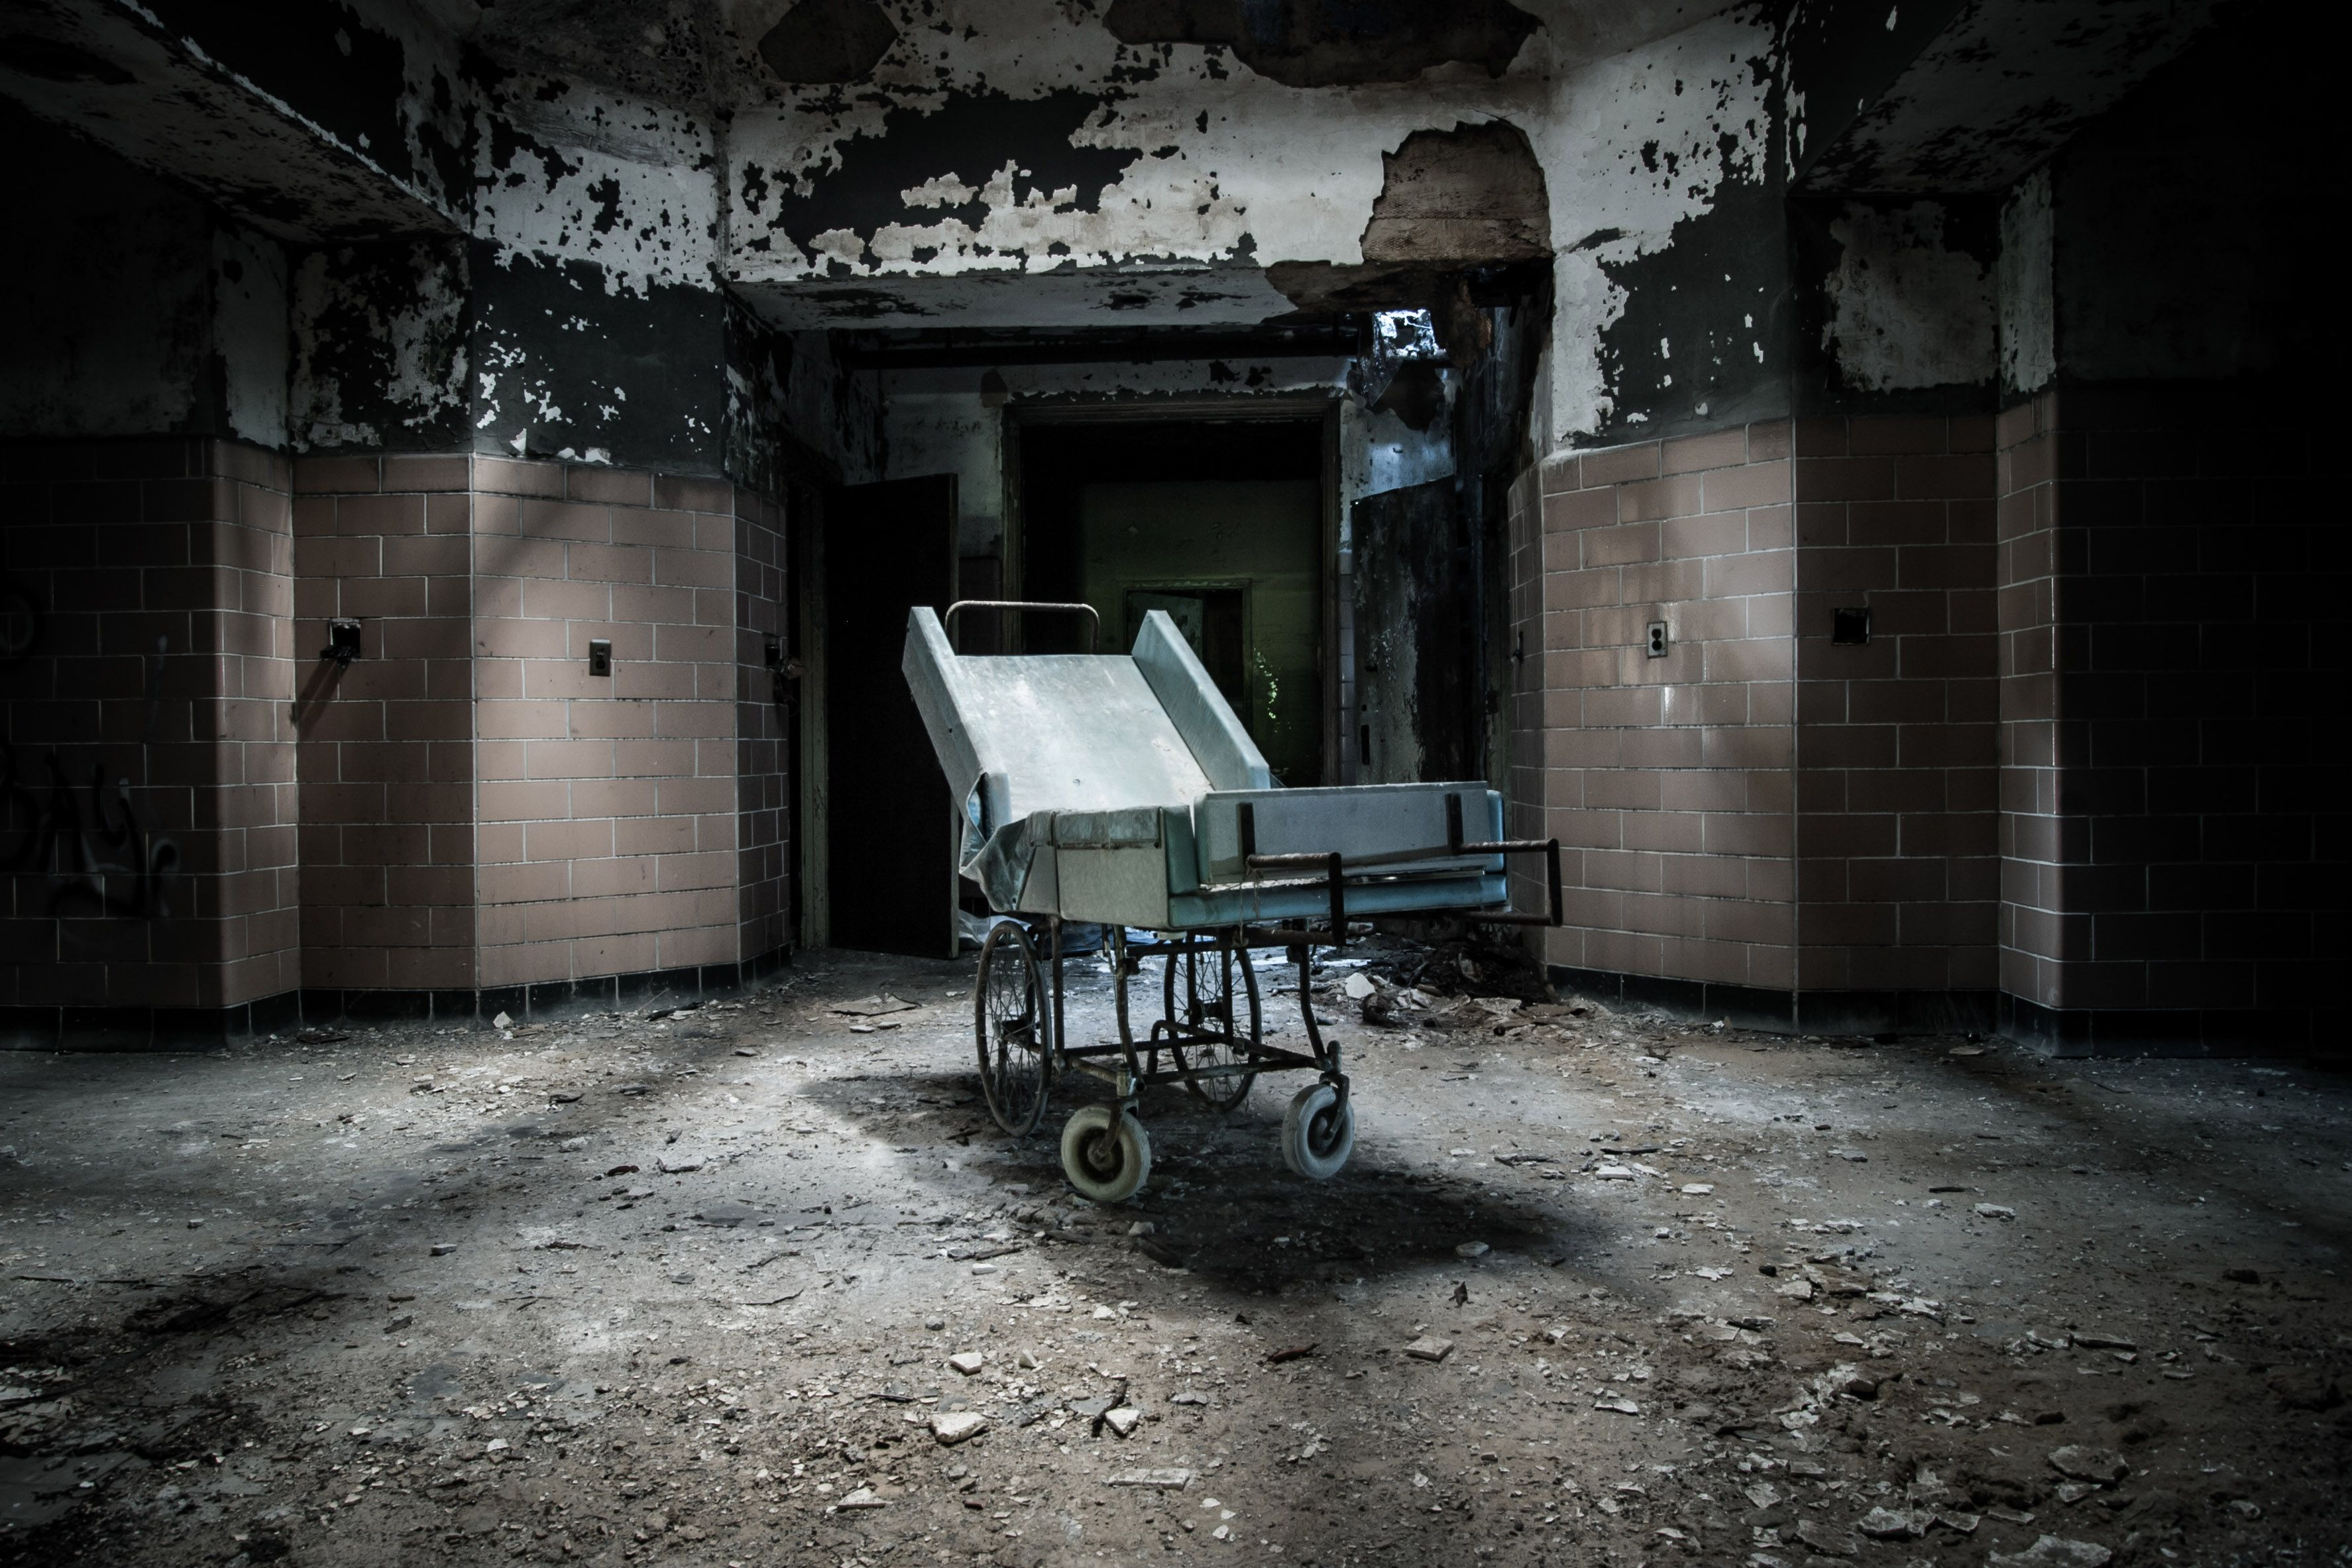 The Modern Asylum >> The Rise Of The Lunatic Asylum And Its Gradual Transformation Into